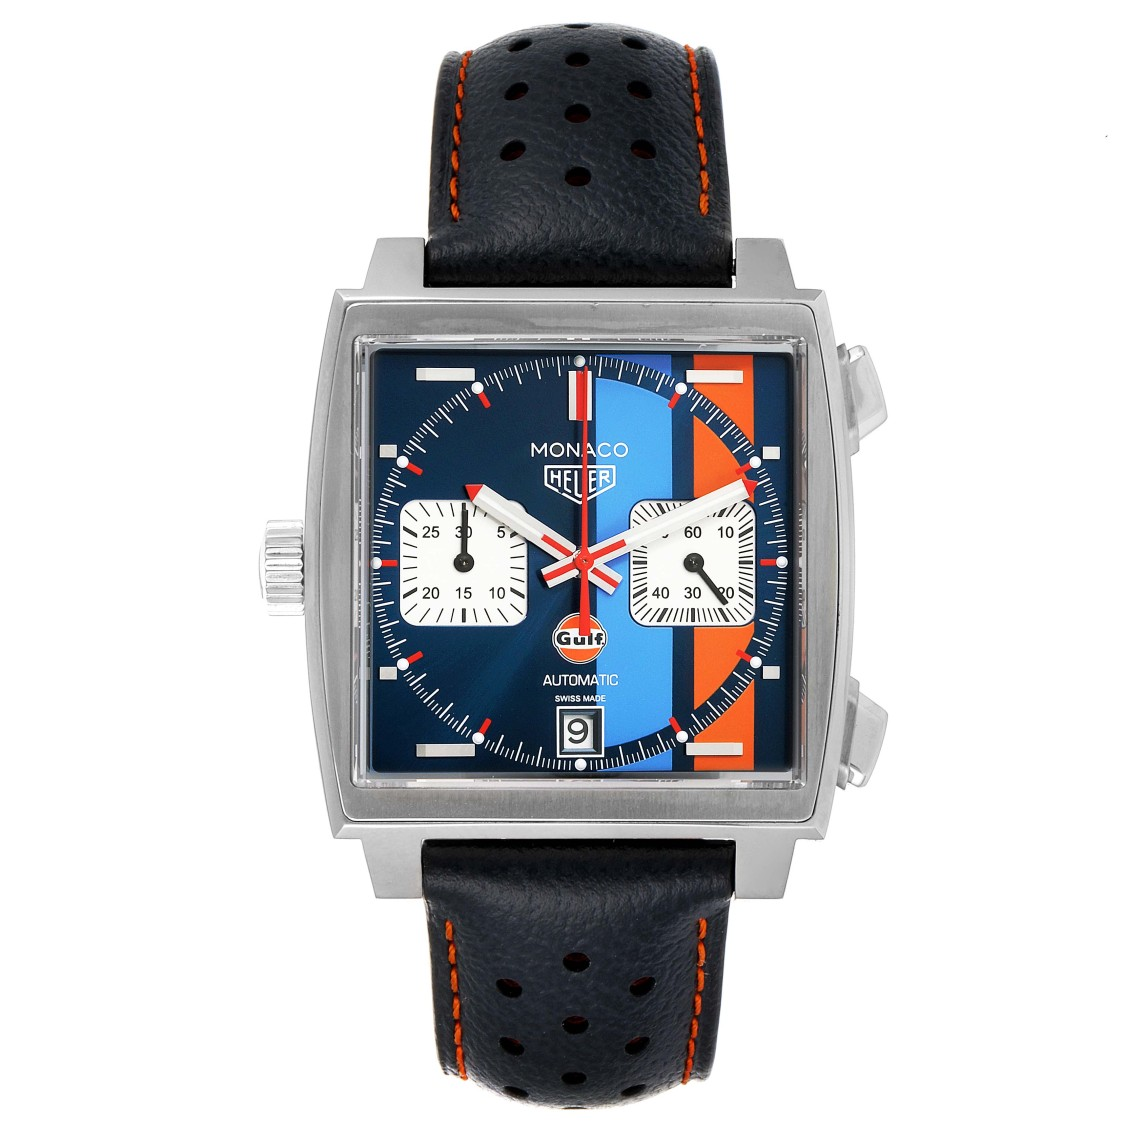 Tag Heuer MONACO GULF 2018 CHRONOGRAPH STEEL MENS WATCH CAW211R BOX PAPERS